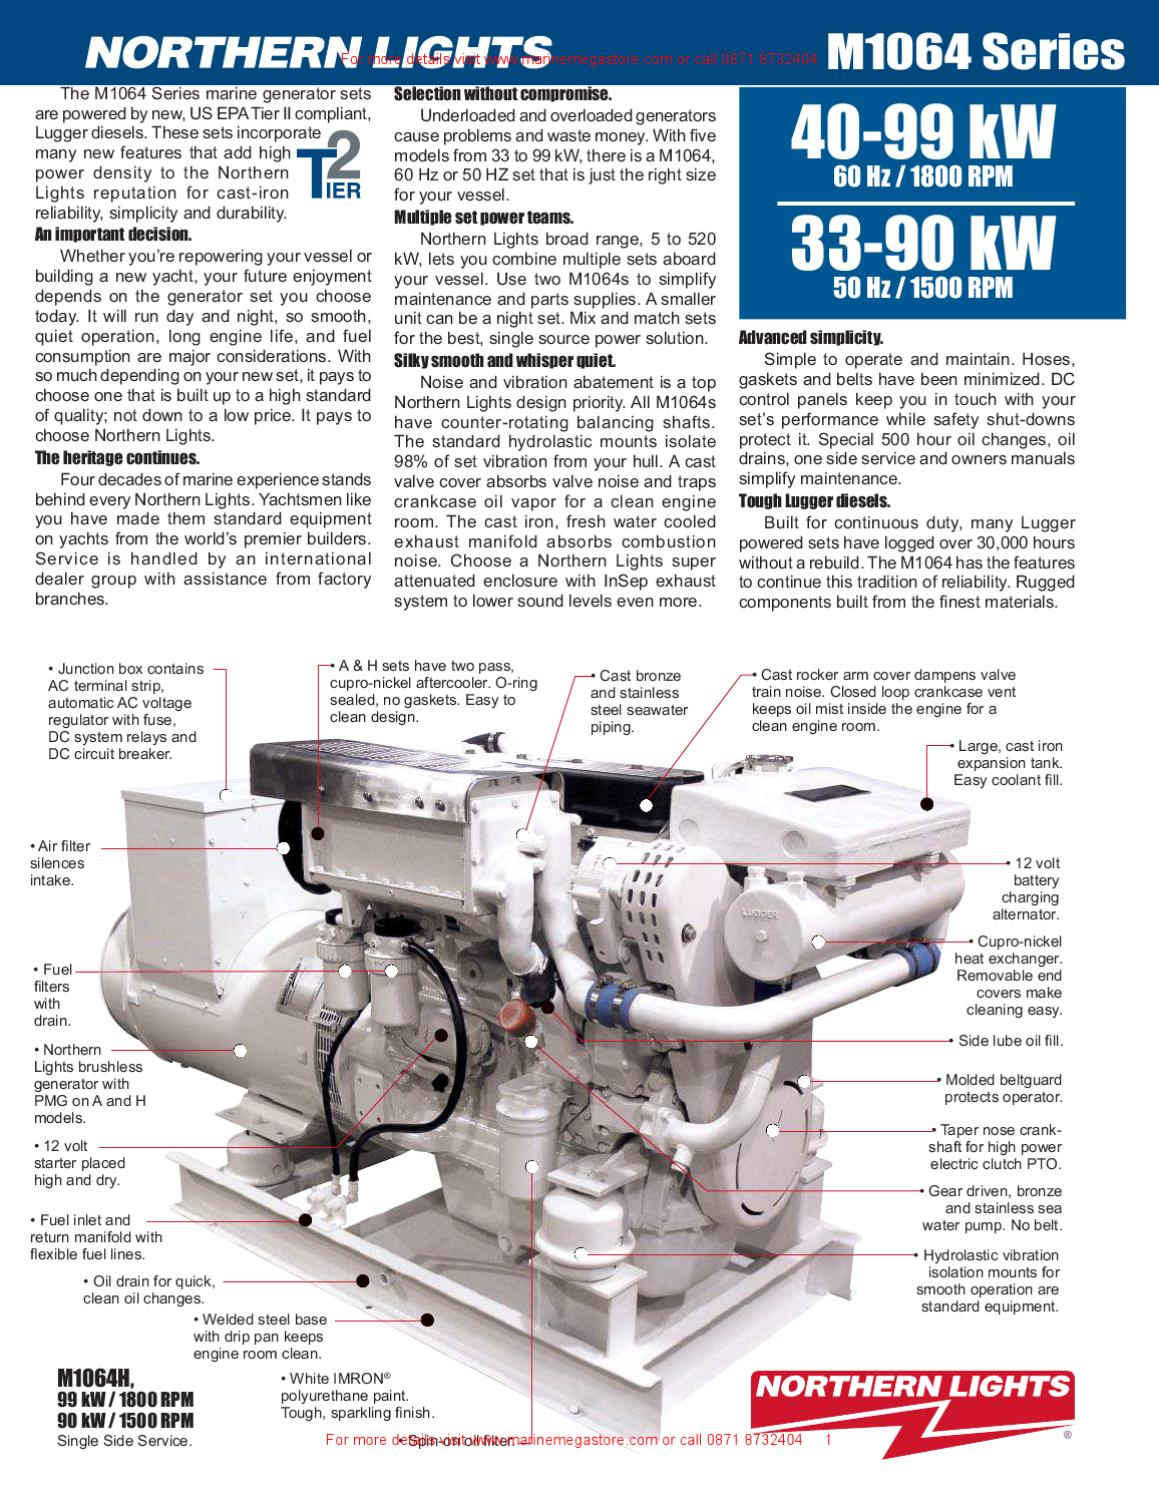 Northern Lights M1064 Series 40 99 30 90 Kw Circuit Breaker Dc Generator Sets By Marine Mega Store Ltd Issuu